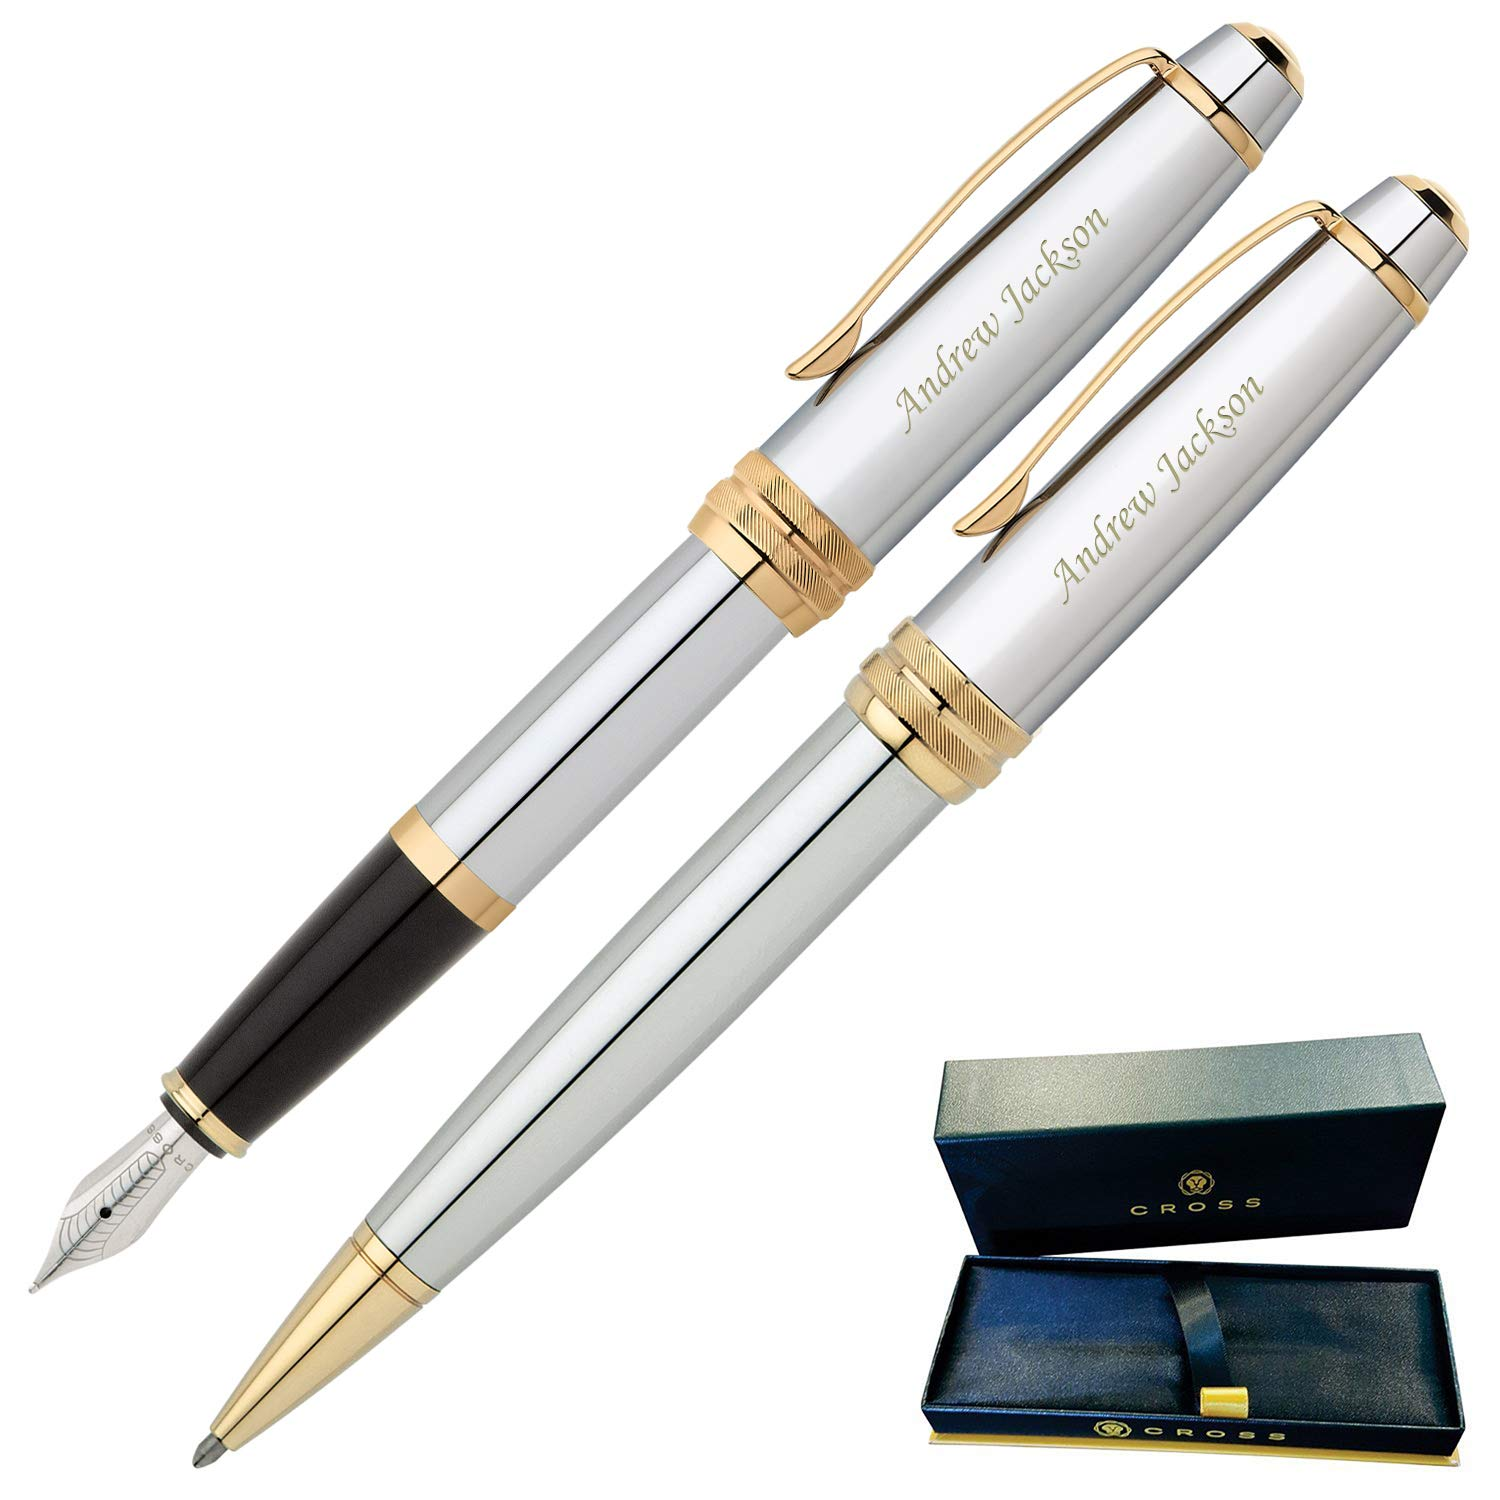 Dayspring Pens | Engraved/Personalized Cross Bailey Medalist Ballpoint and Fountain Gift Pen Set. Custom Engraved Case Included by Dayspring Pens (Image #1)